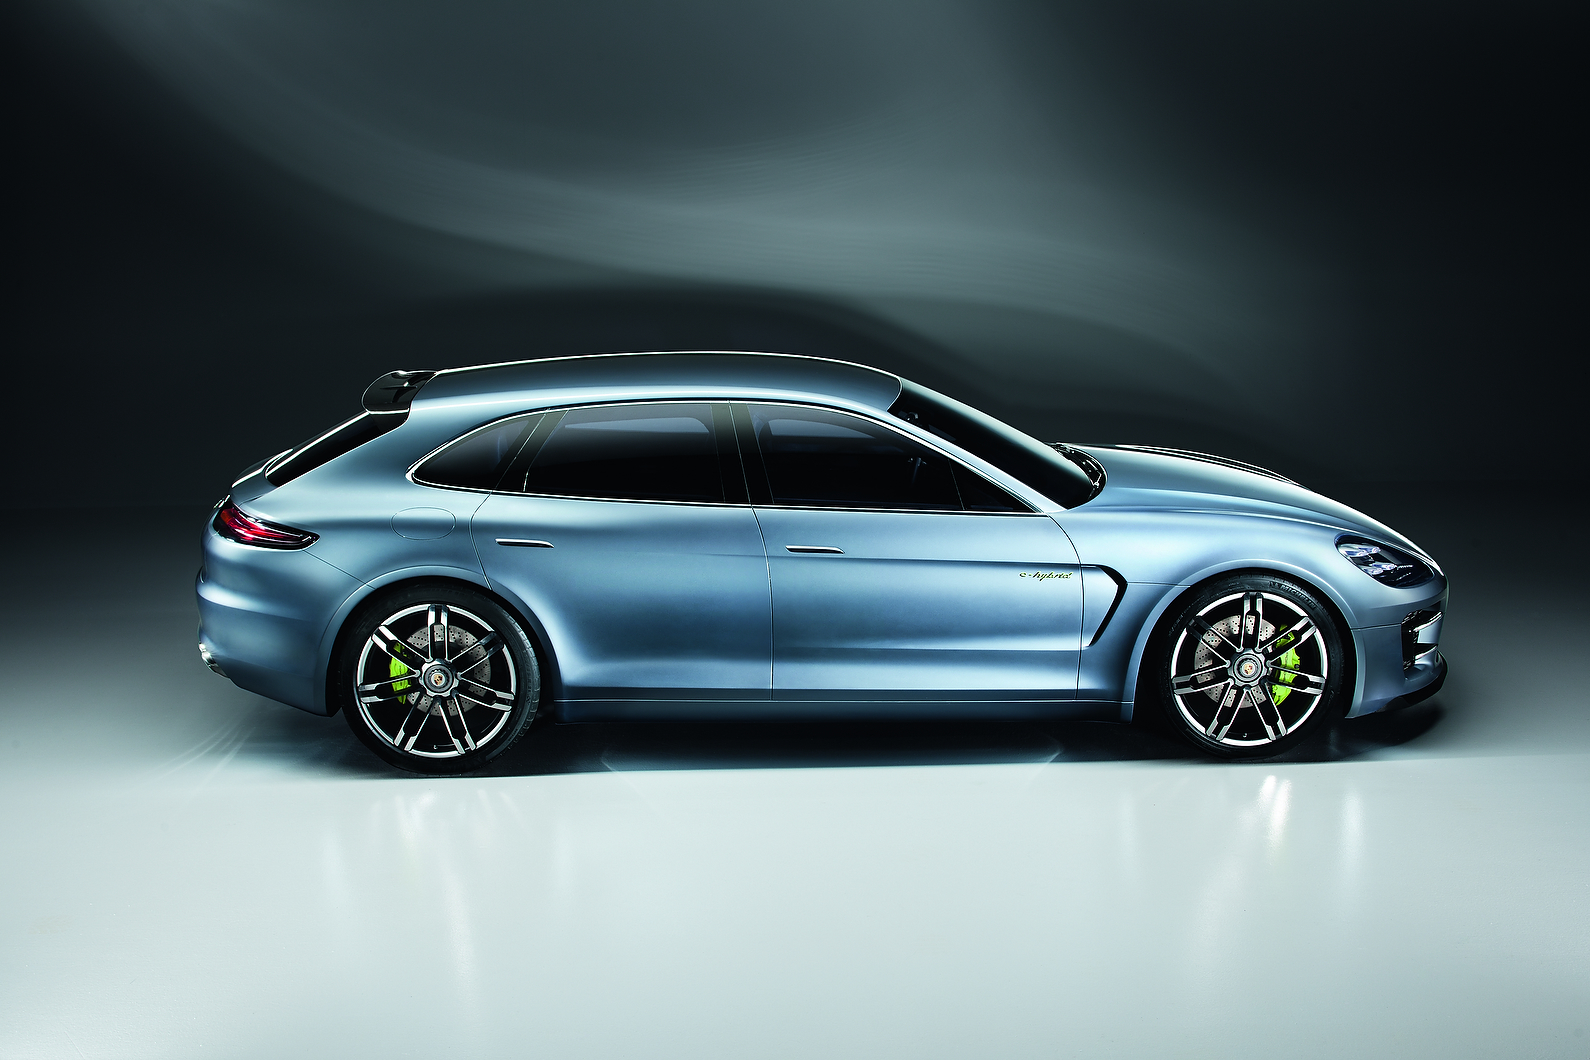 http://images.cdn.autocar.co.uk/sites/autocar.co.uk/files/porsche-sport-turismo-8.jpg